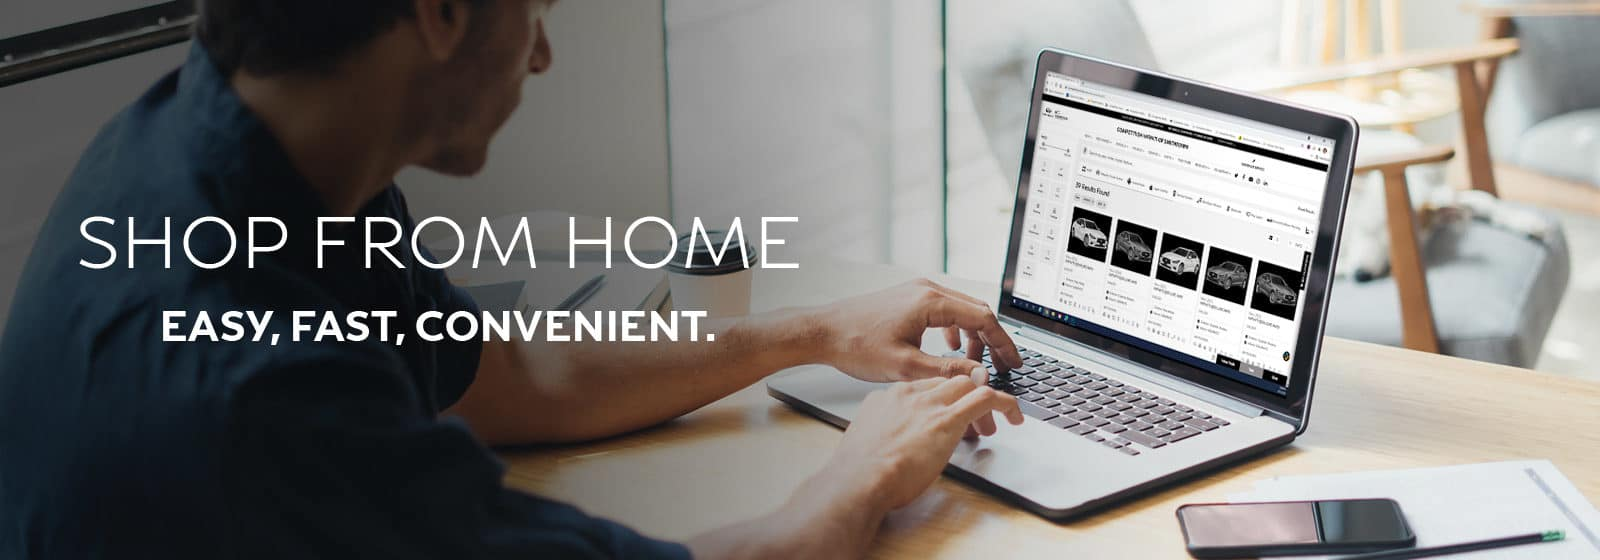 Homepage-Slider-INFINITI-Shop-From-Home